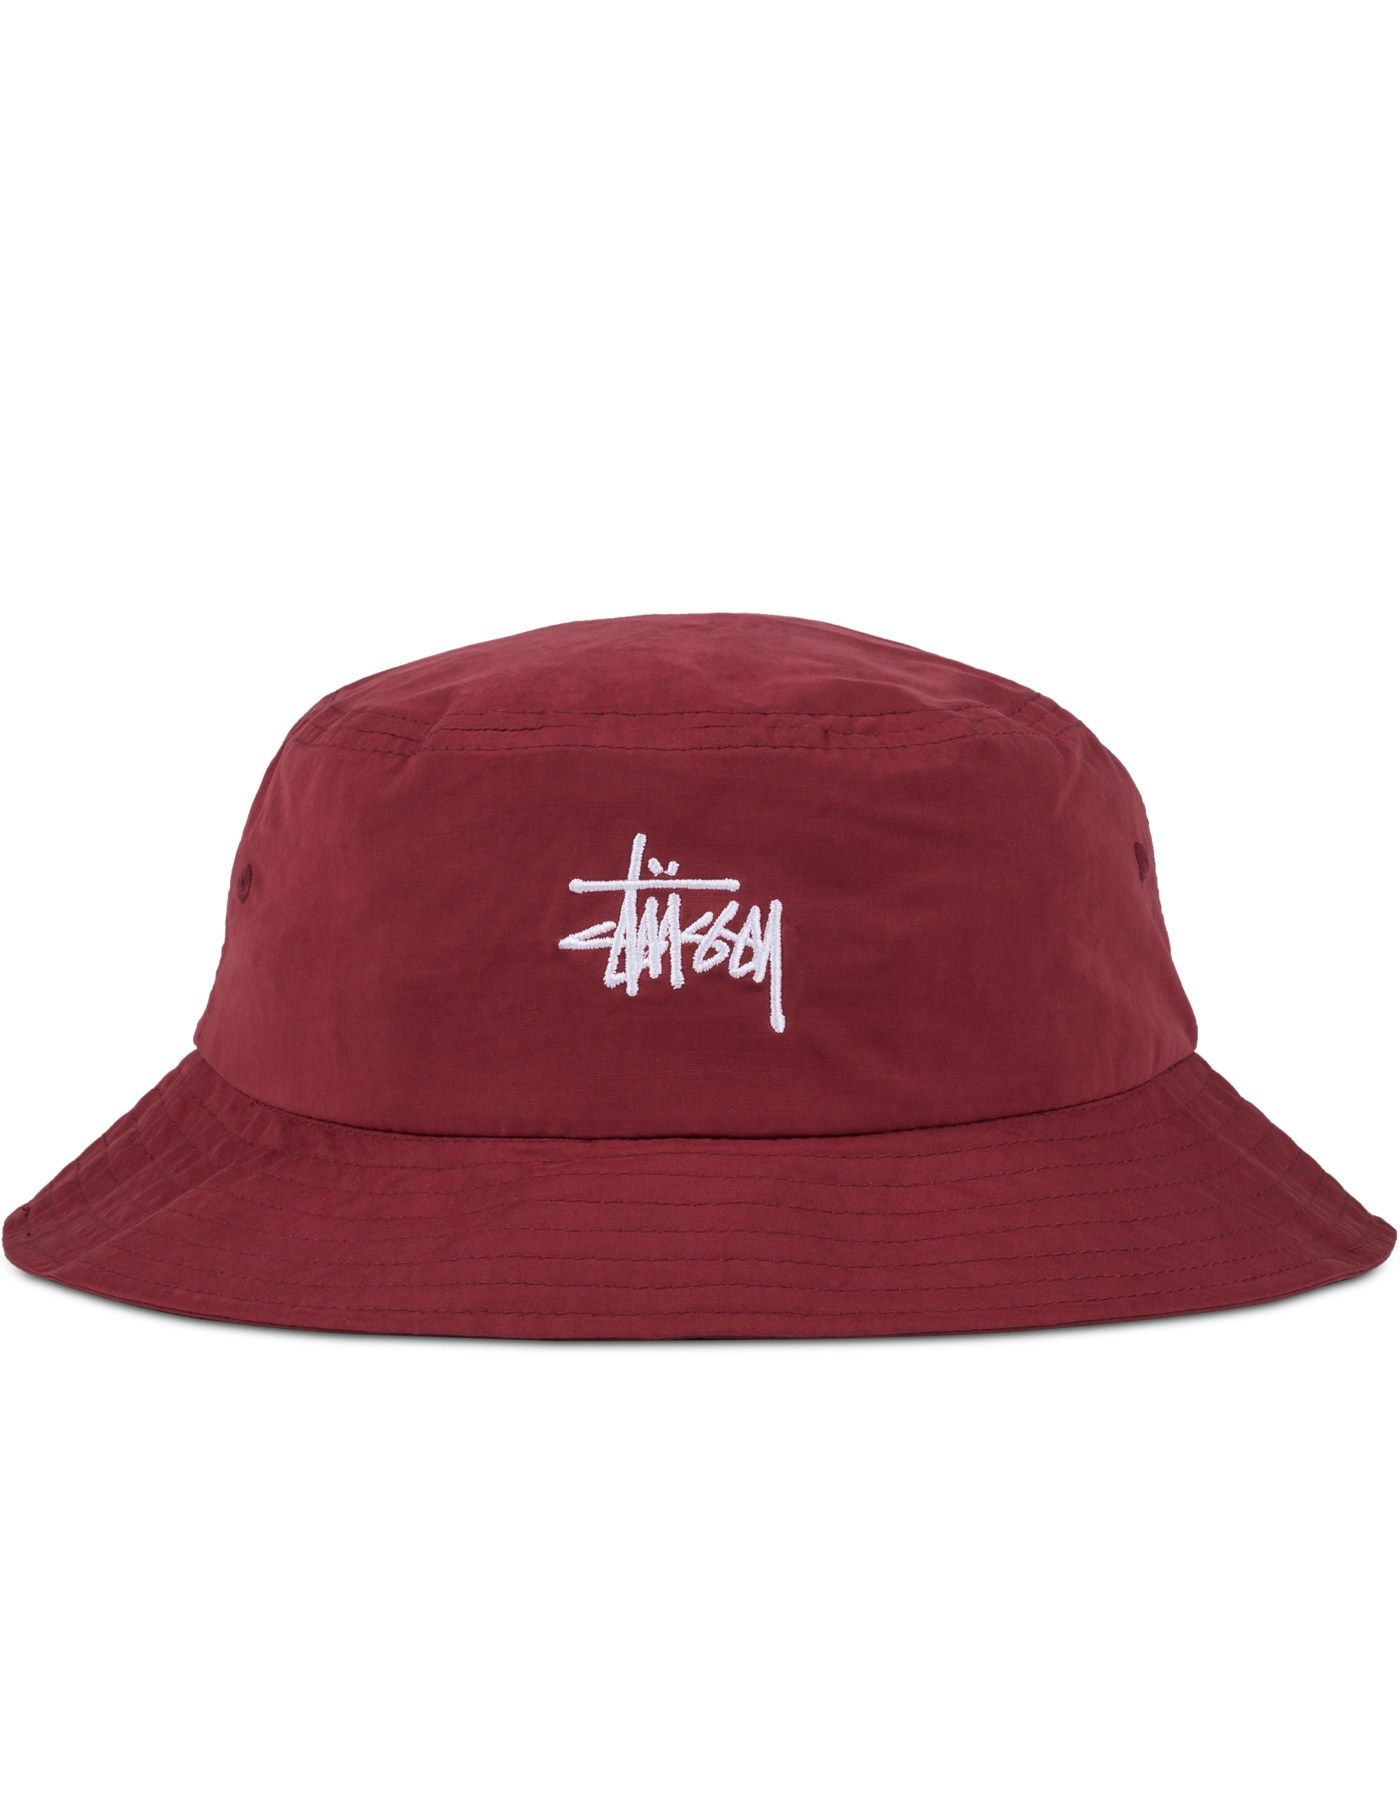 8308c8ee105 Shop Stussy Classic Logo Bucket Hat at HBX. Free Worldwide Shipping  available.